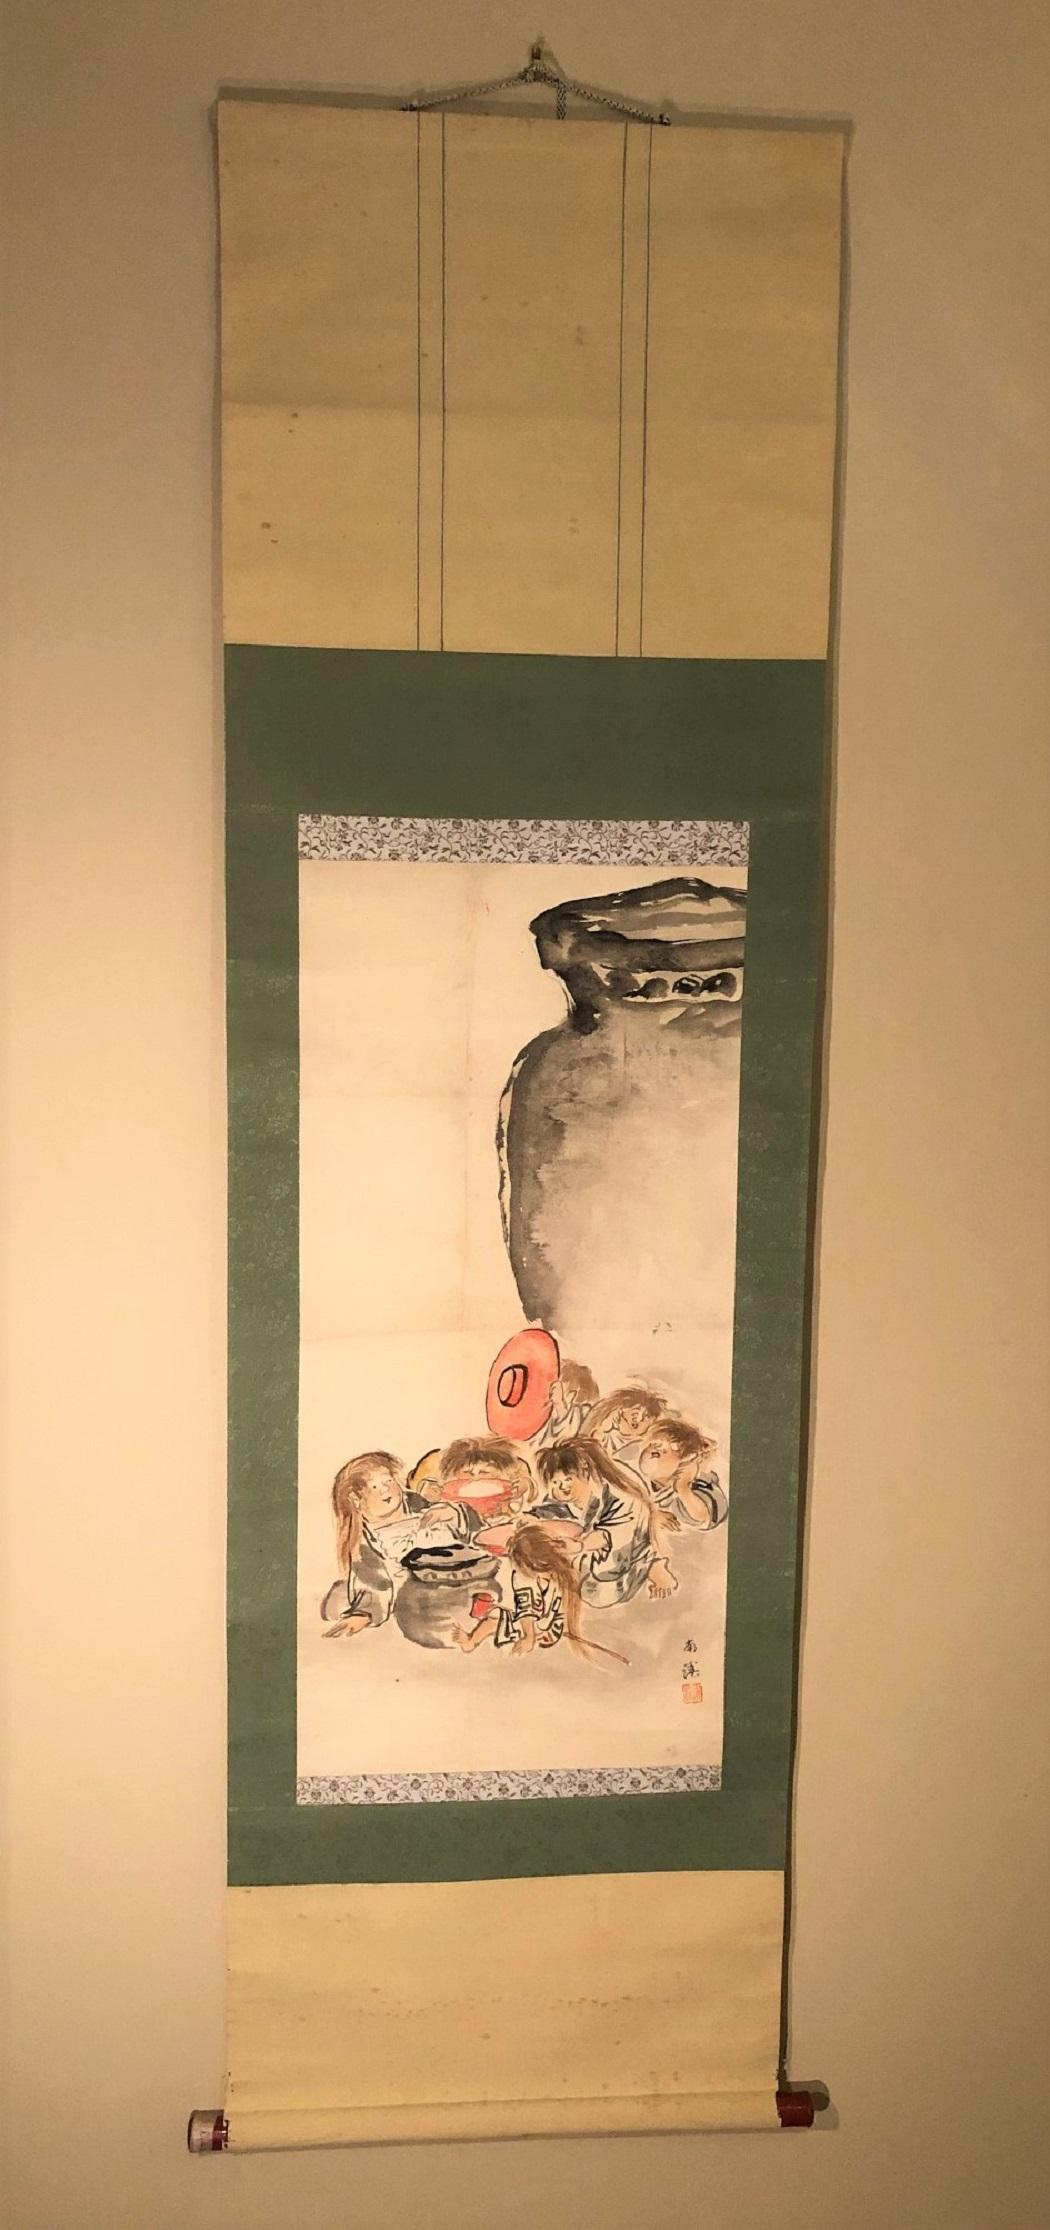 JAPANESE SCROLL PAINTING OF SHOJO - 19in x 64in